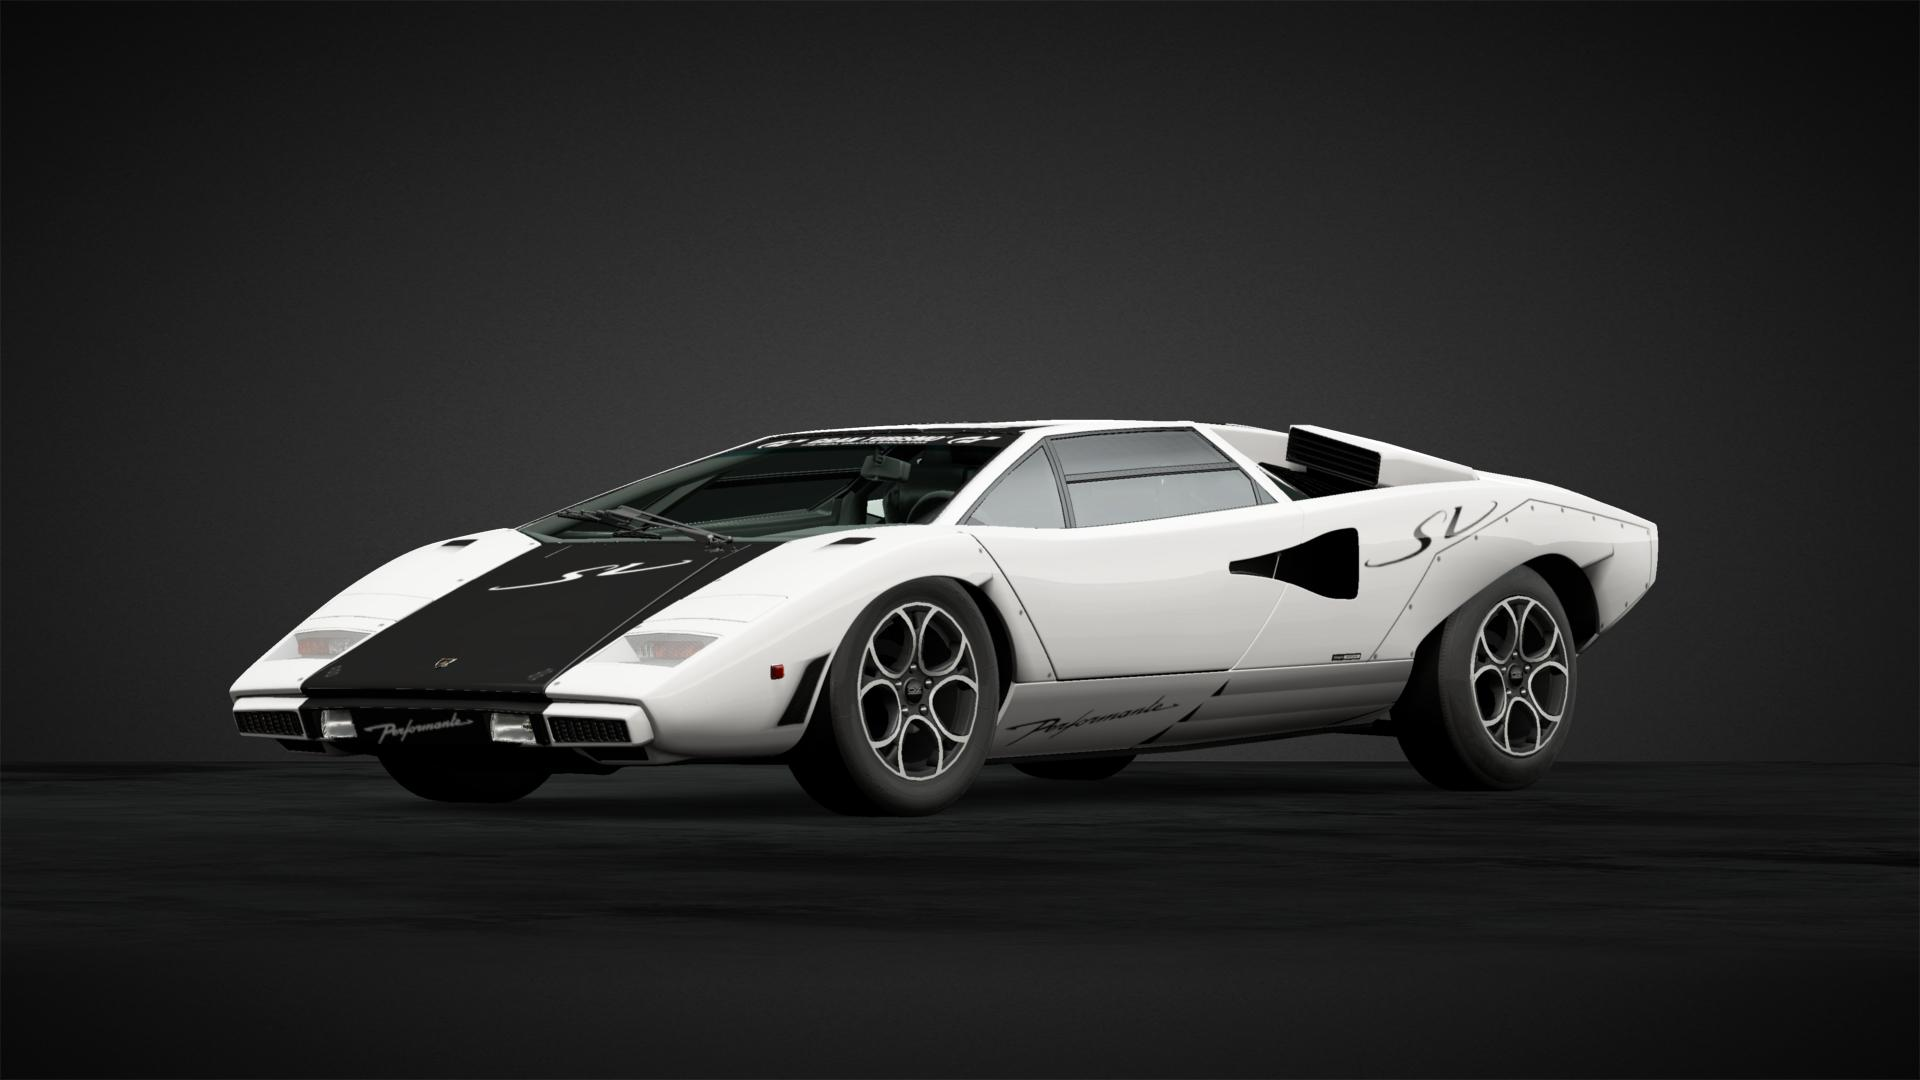 Lamborghini Countach Sv Car Livery By Xcolomb1anx Community